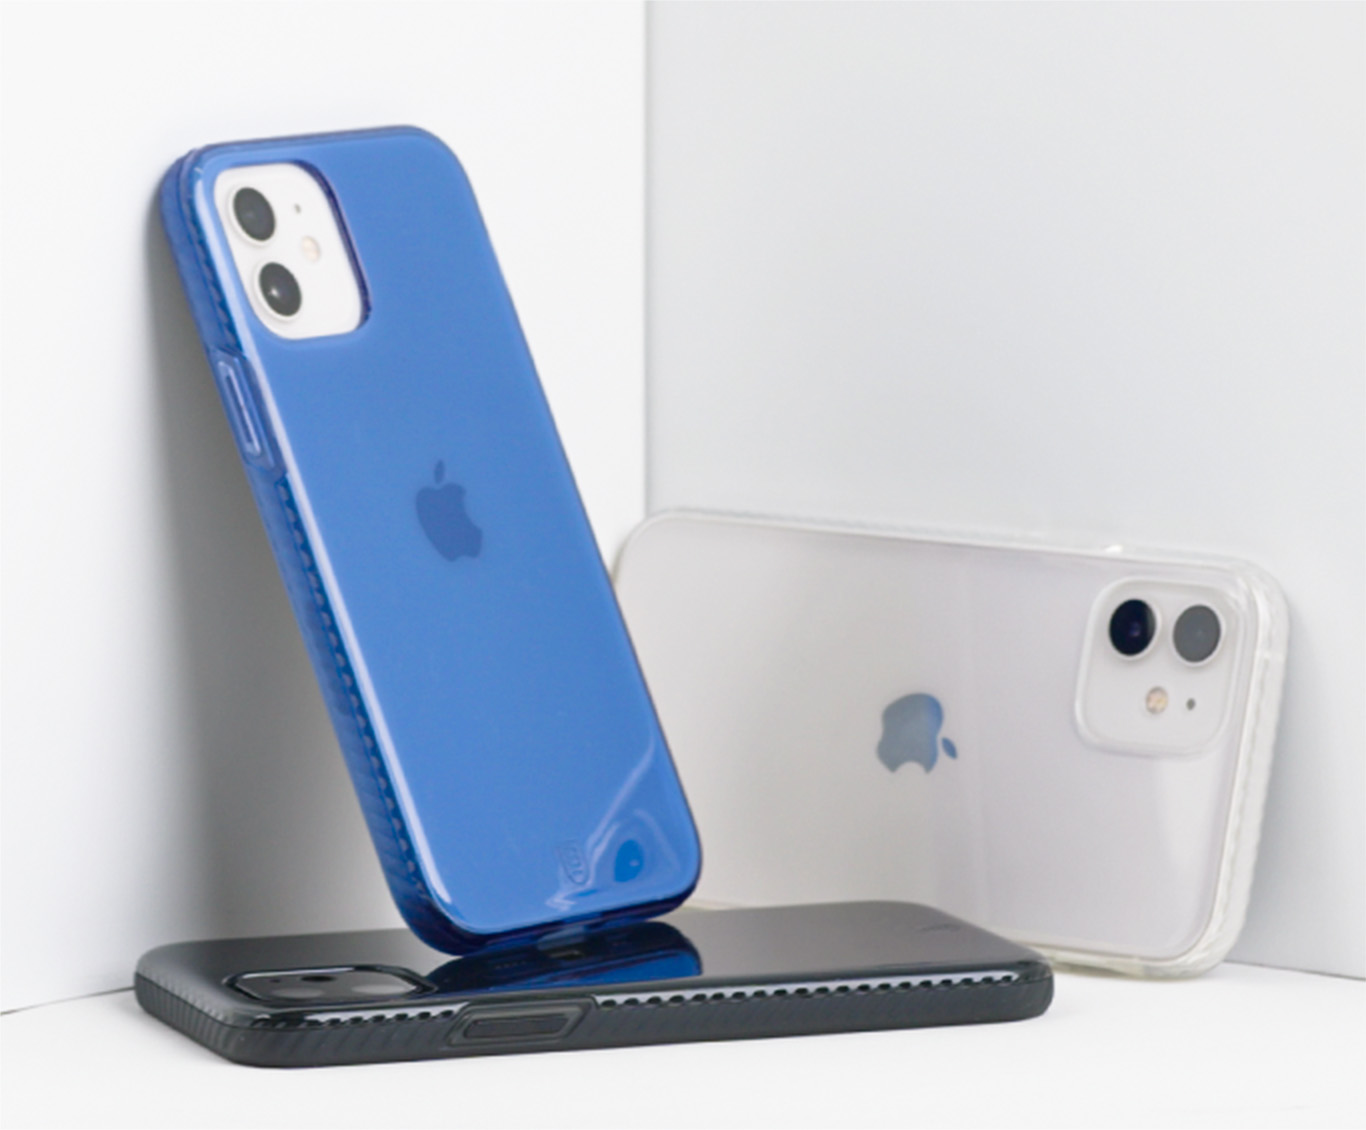 Name of new iPhone, iPhone 13 or iPhone 12s